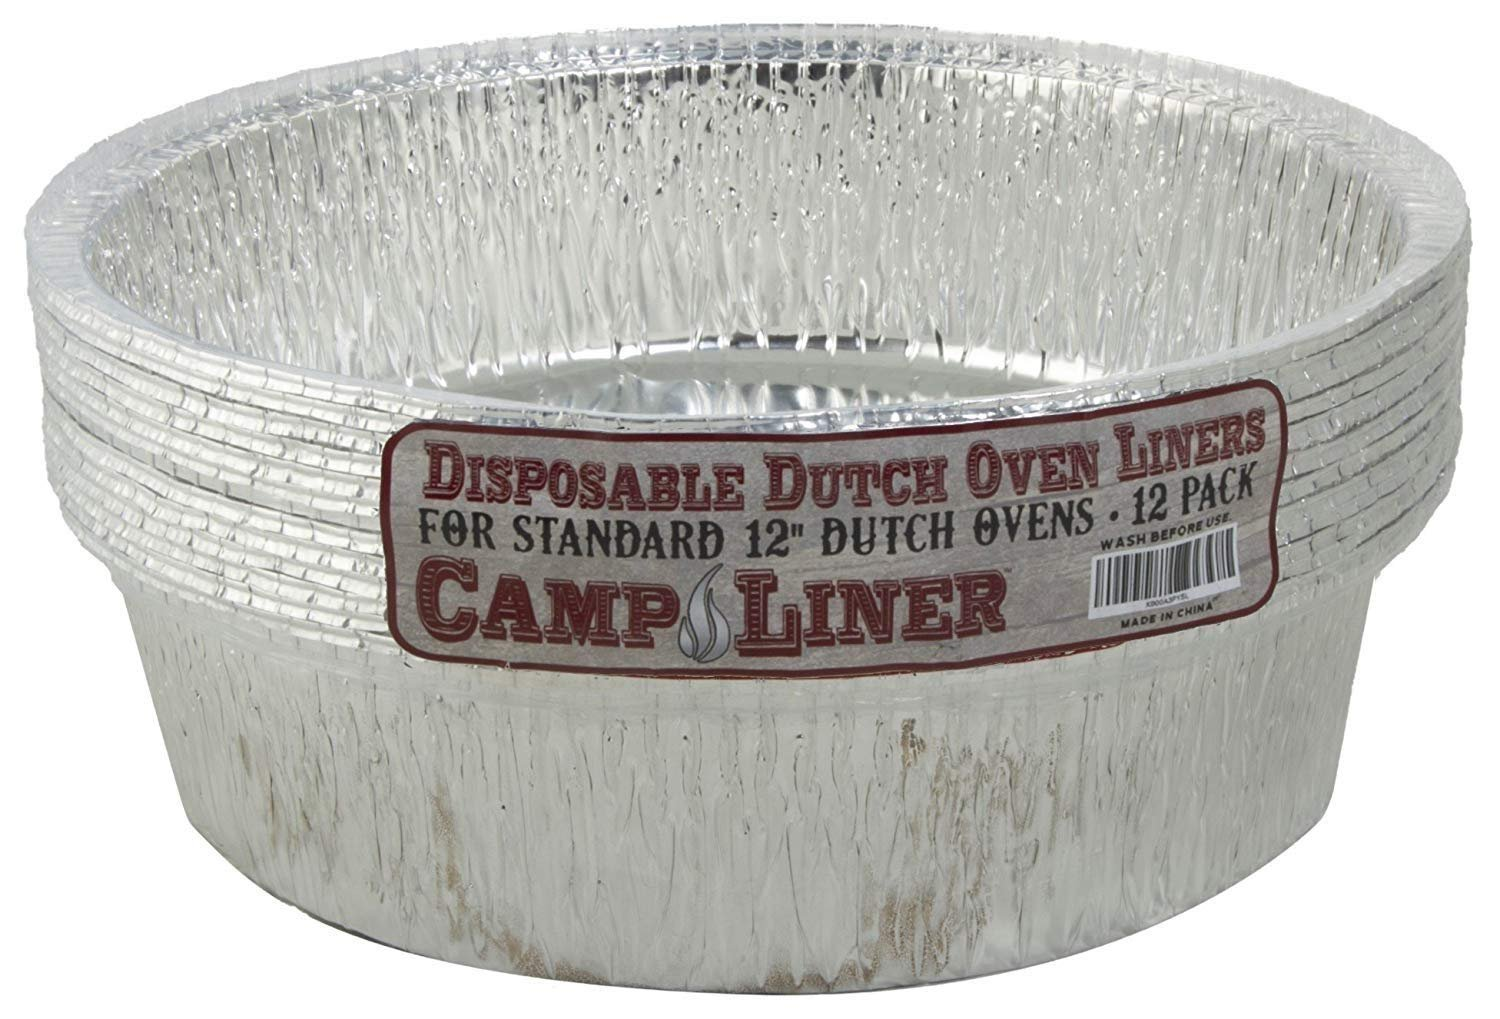 "Campliner Disposable Foil Dutch Oven Liner, 12 Pack 12"" 6Q liners, No more Cleaning or seasoning, perfect accessory. Lodge, Camp Chef"